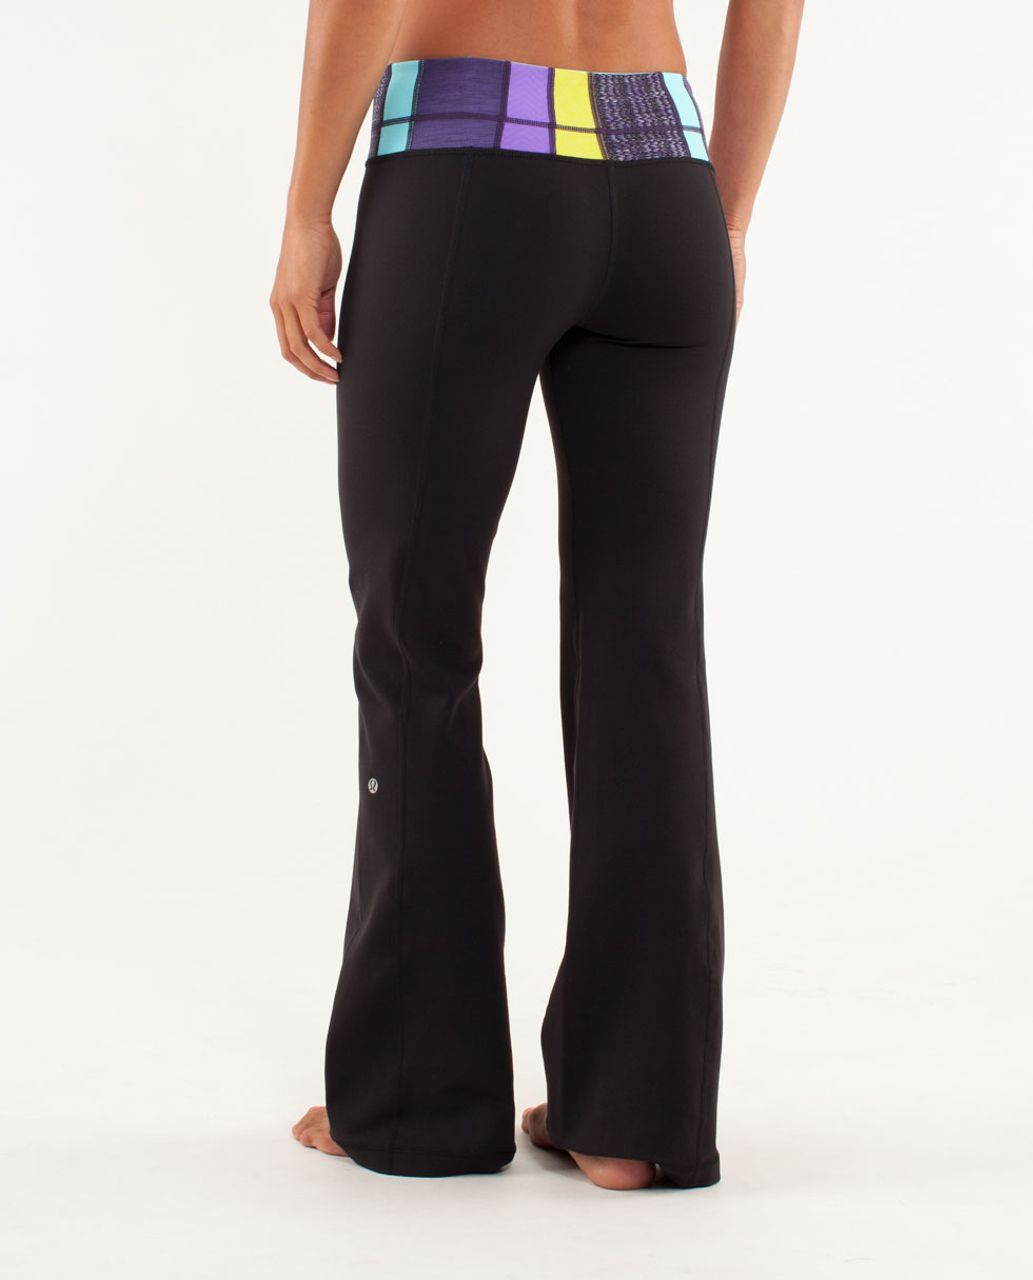 Lululemon Groove Pant (Tall) - Black / Fall Quilt 13 / Angel Blue